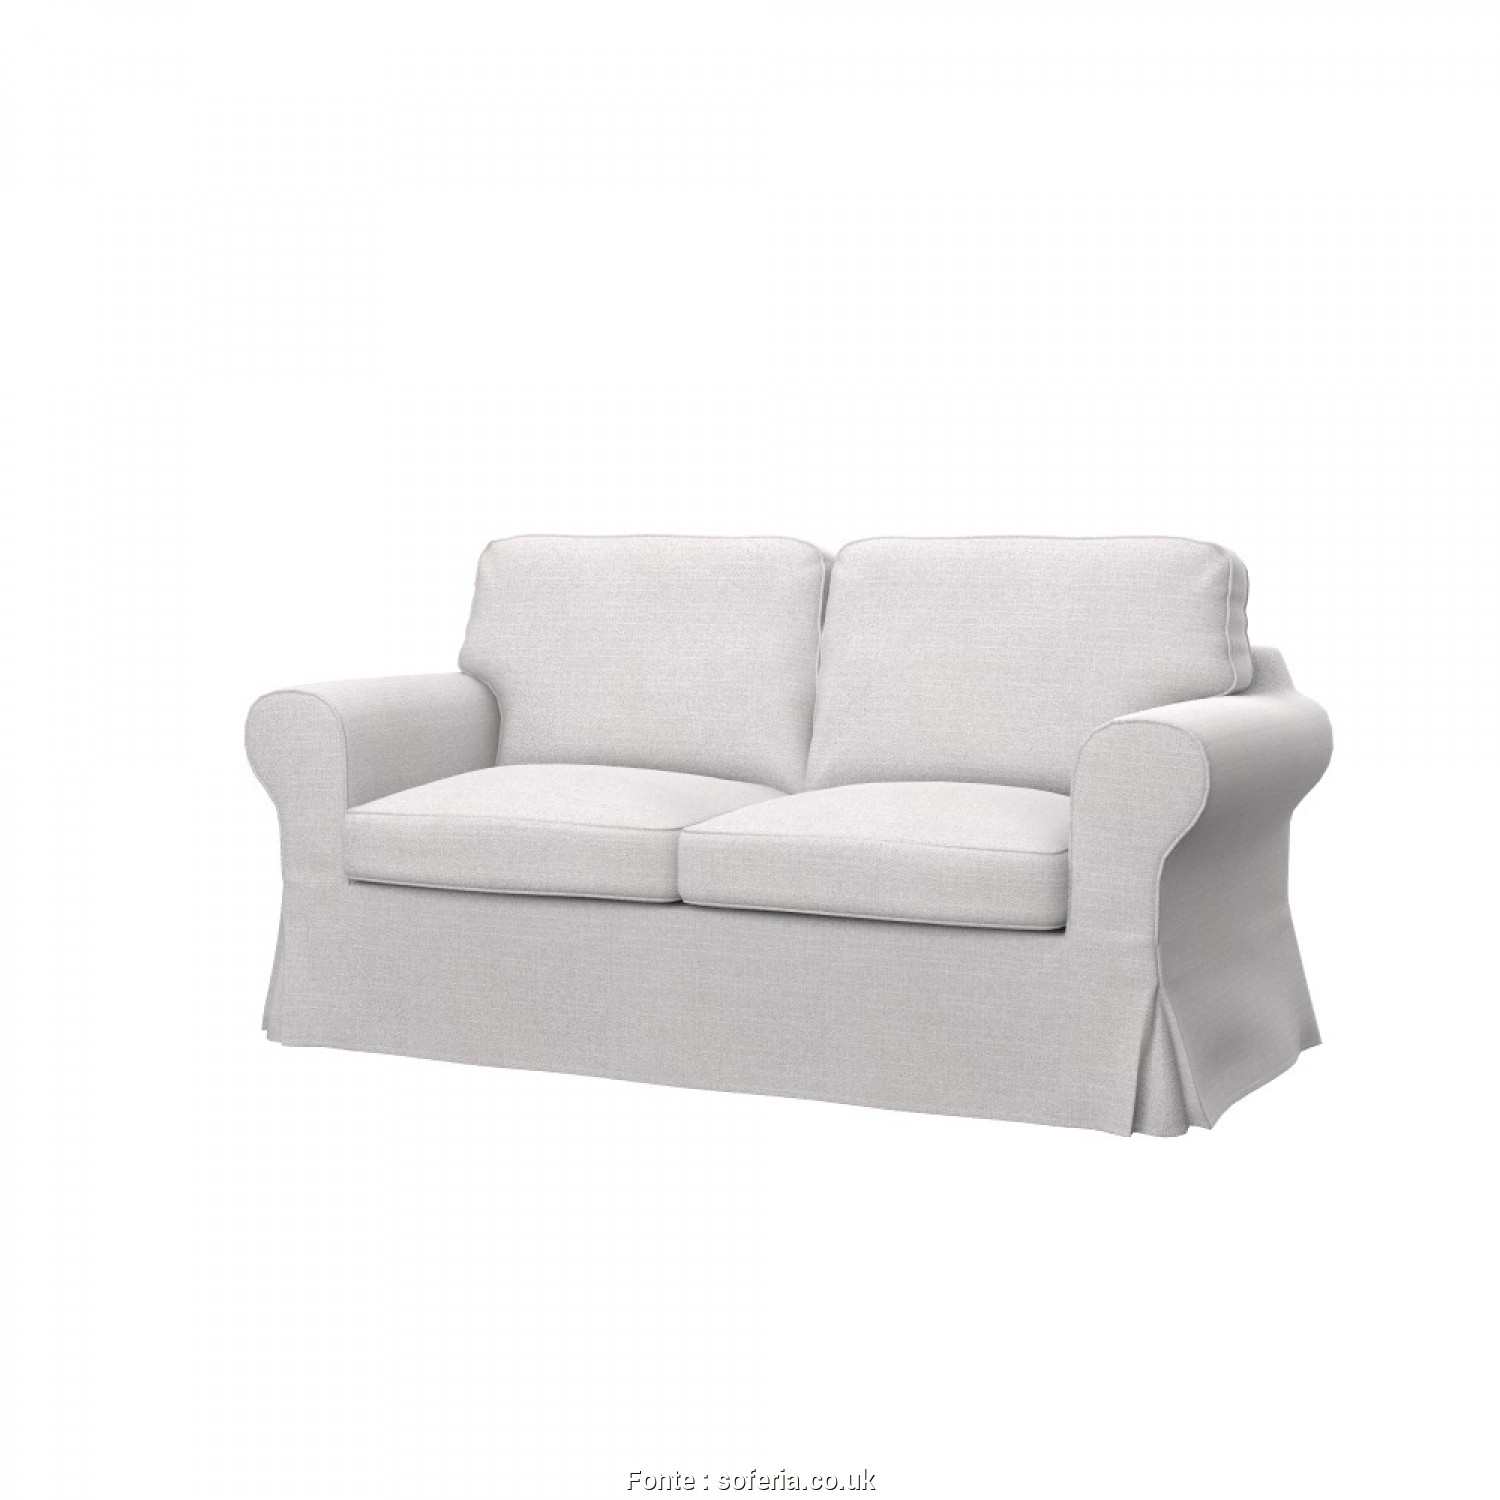 Divano Bordeaux Ikea, Elegante IKEA Sofa Covers, Soferia, Covers, IKEA Sofas & Armchairs